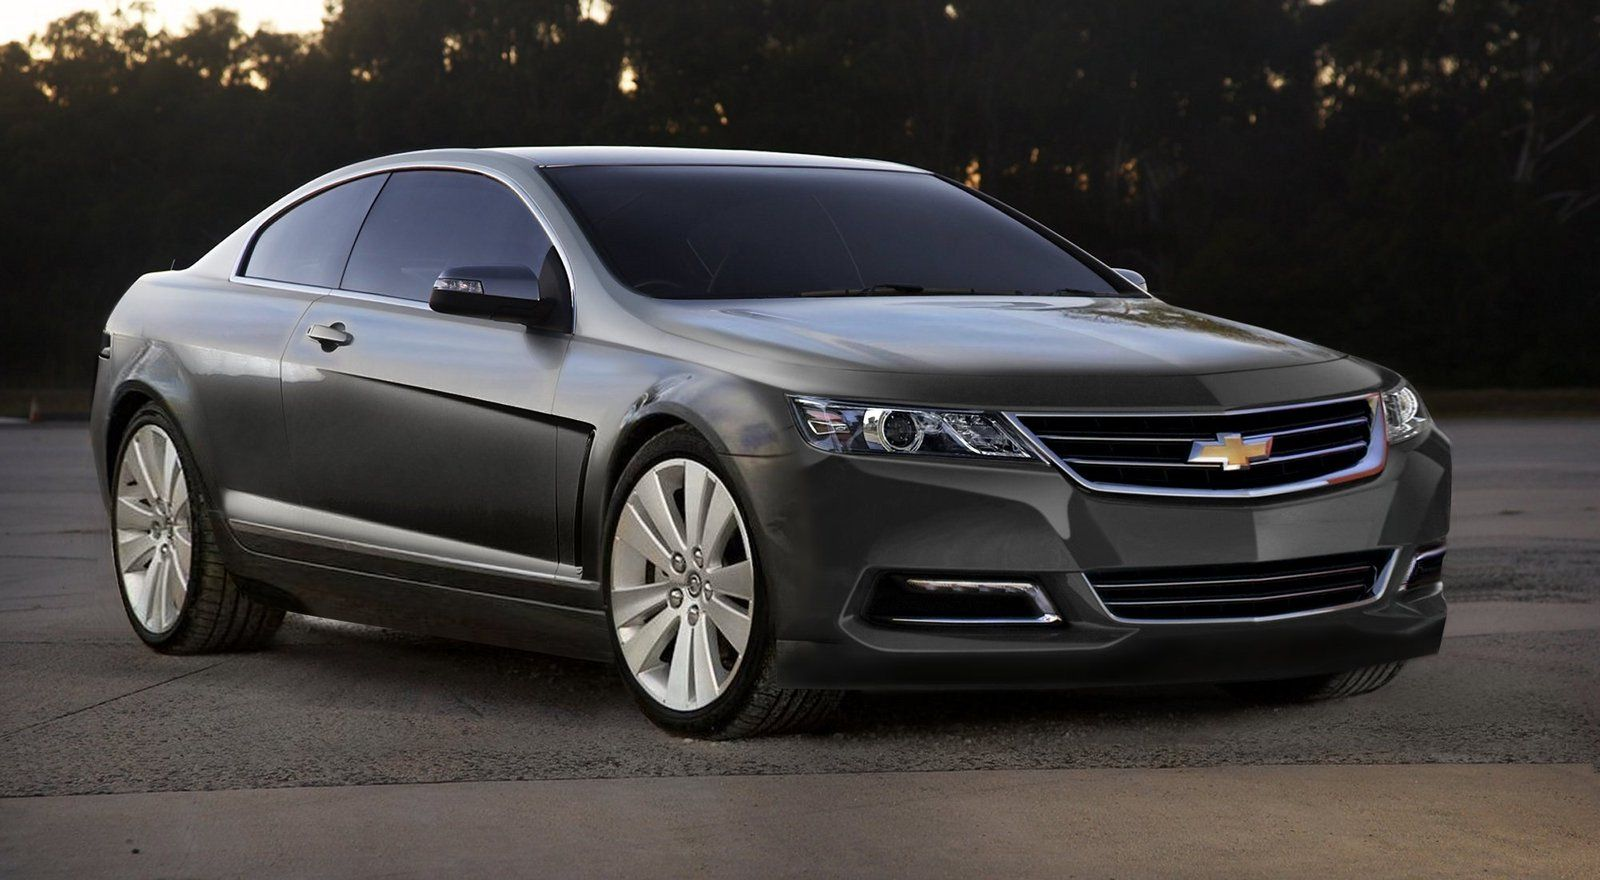 All Chevy chevy cars 2015 : 2015 Chevy SS Coupe | AUTO | Pinterest | Chevy ss, Ss and Cars